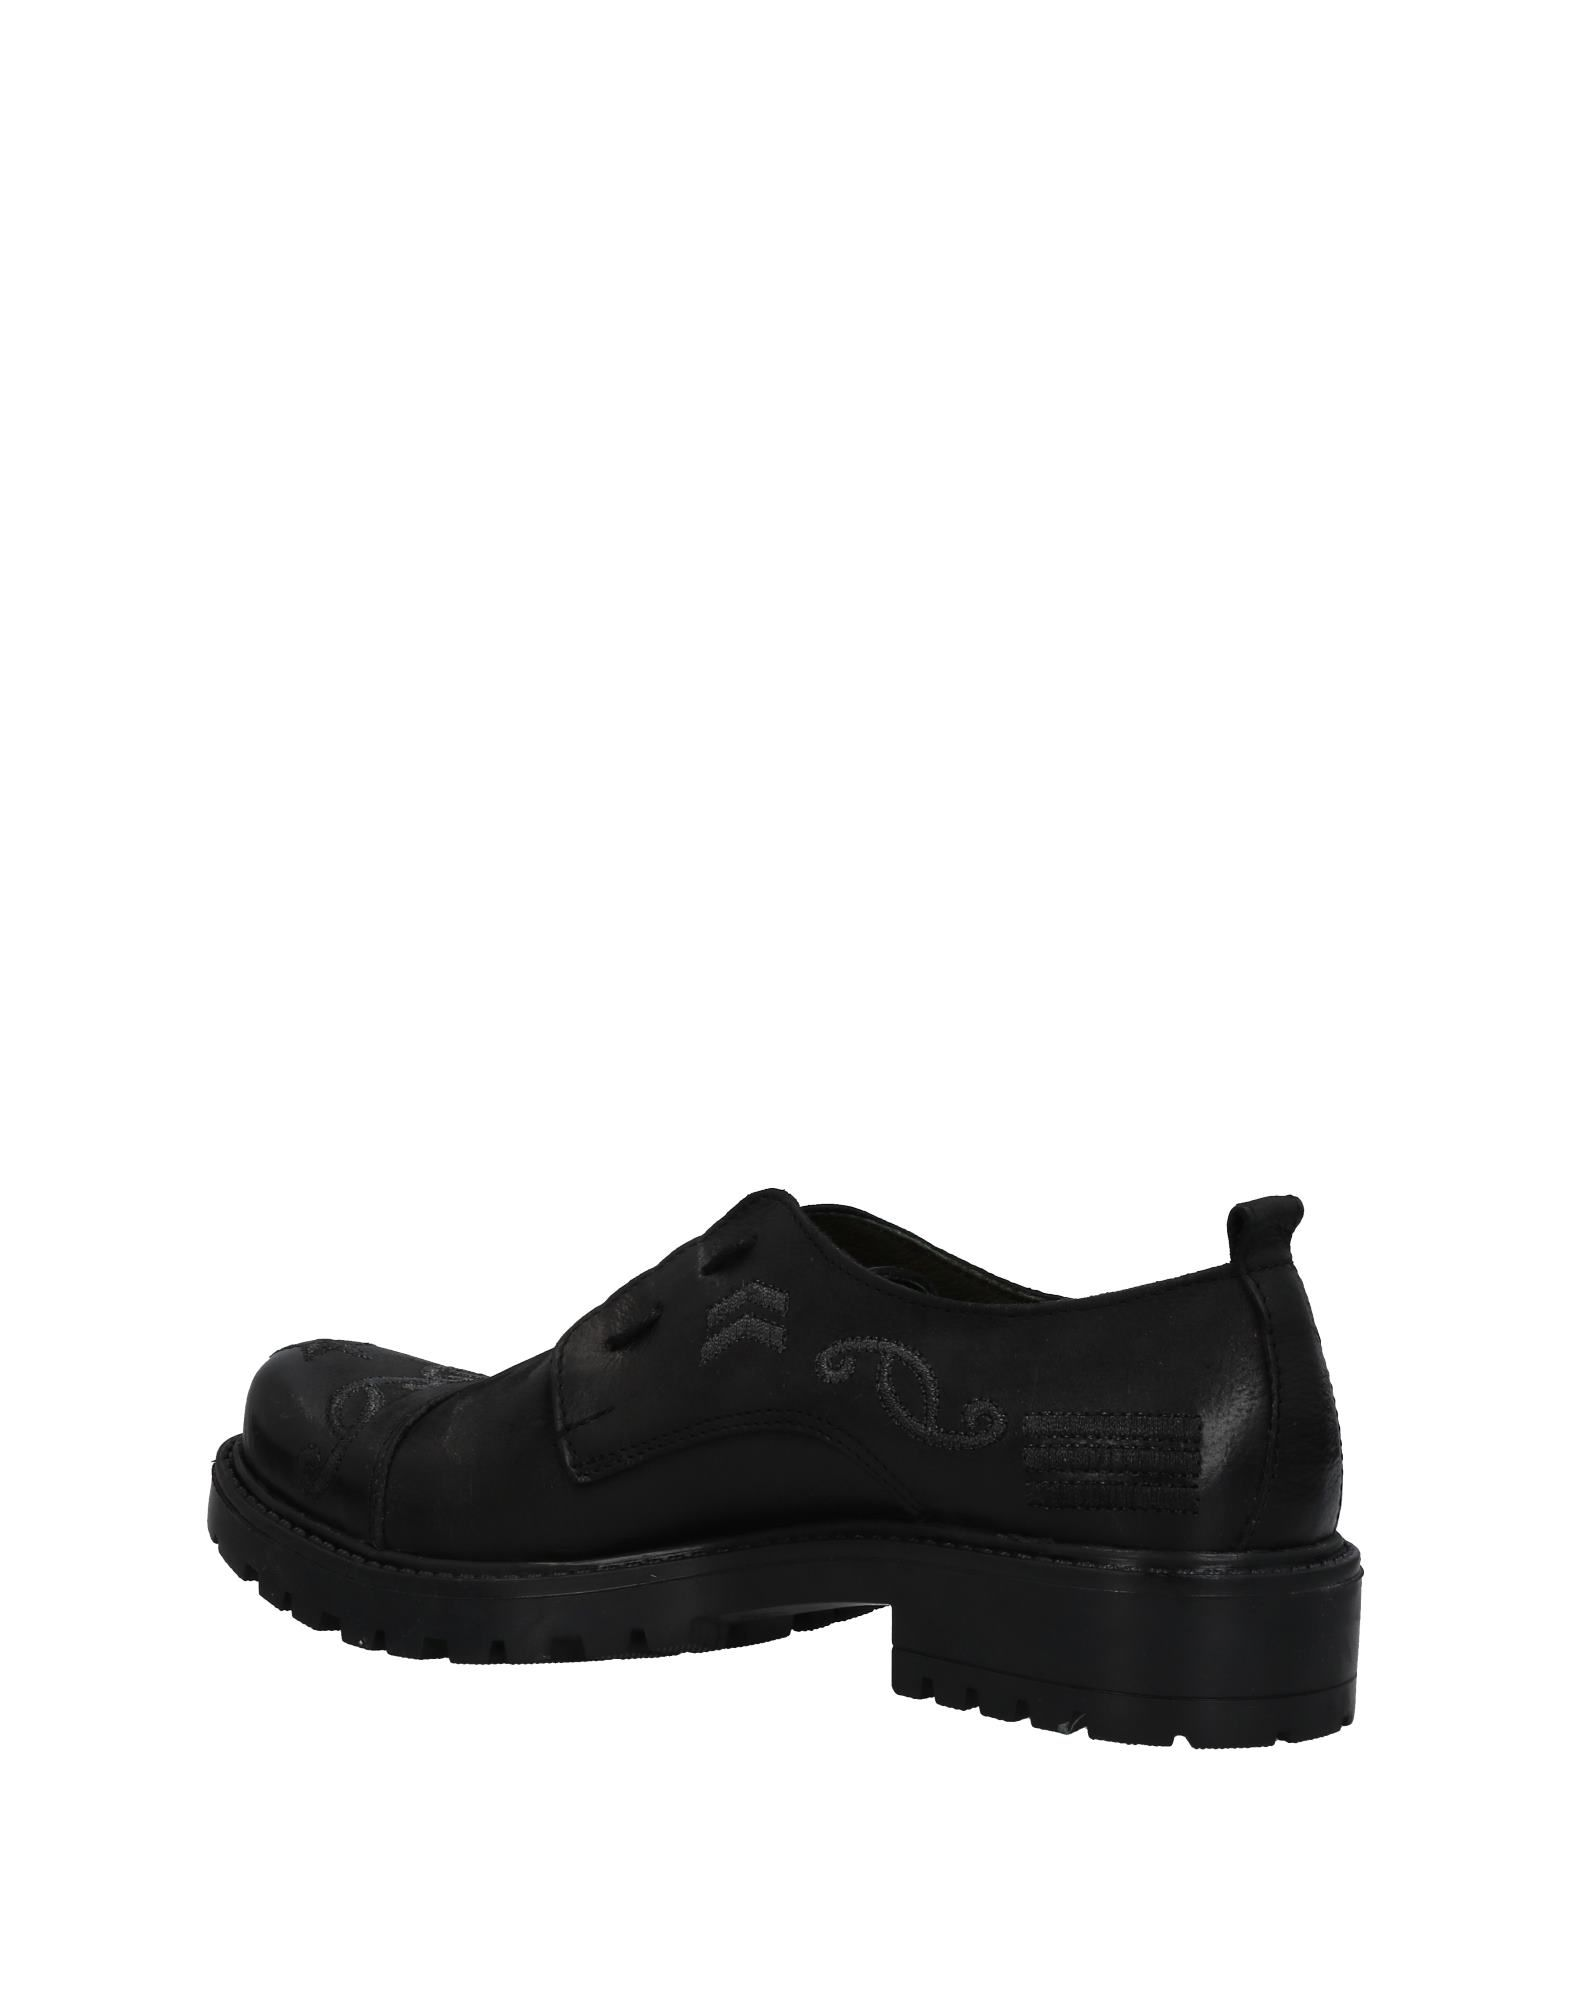 CHAUSSURES - Chaussures à lacetsCharme cGCTGQO